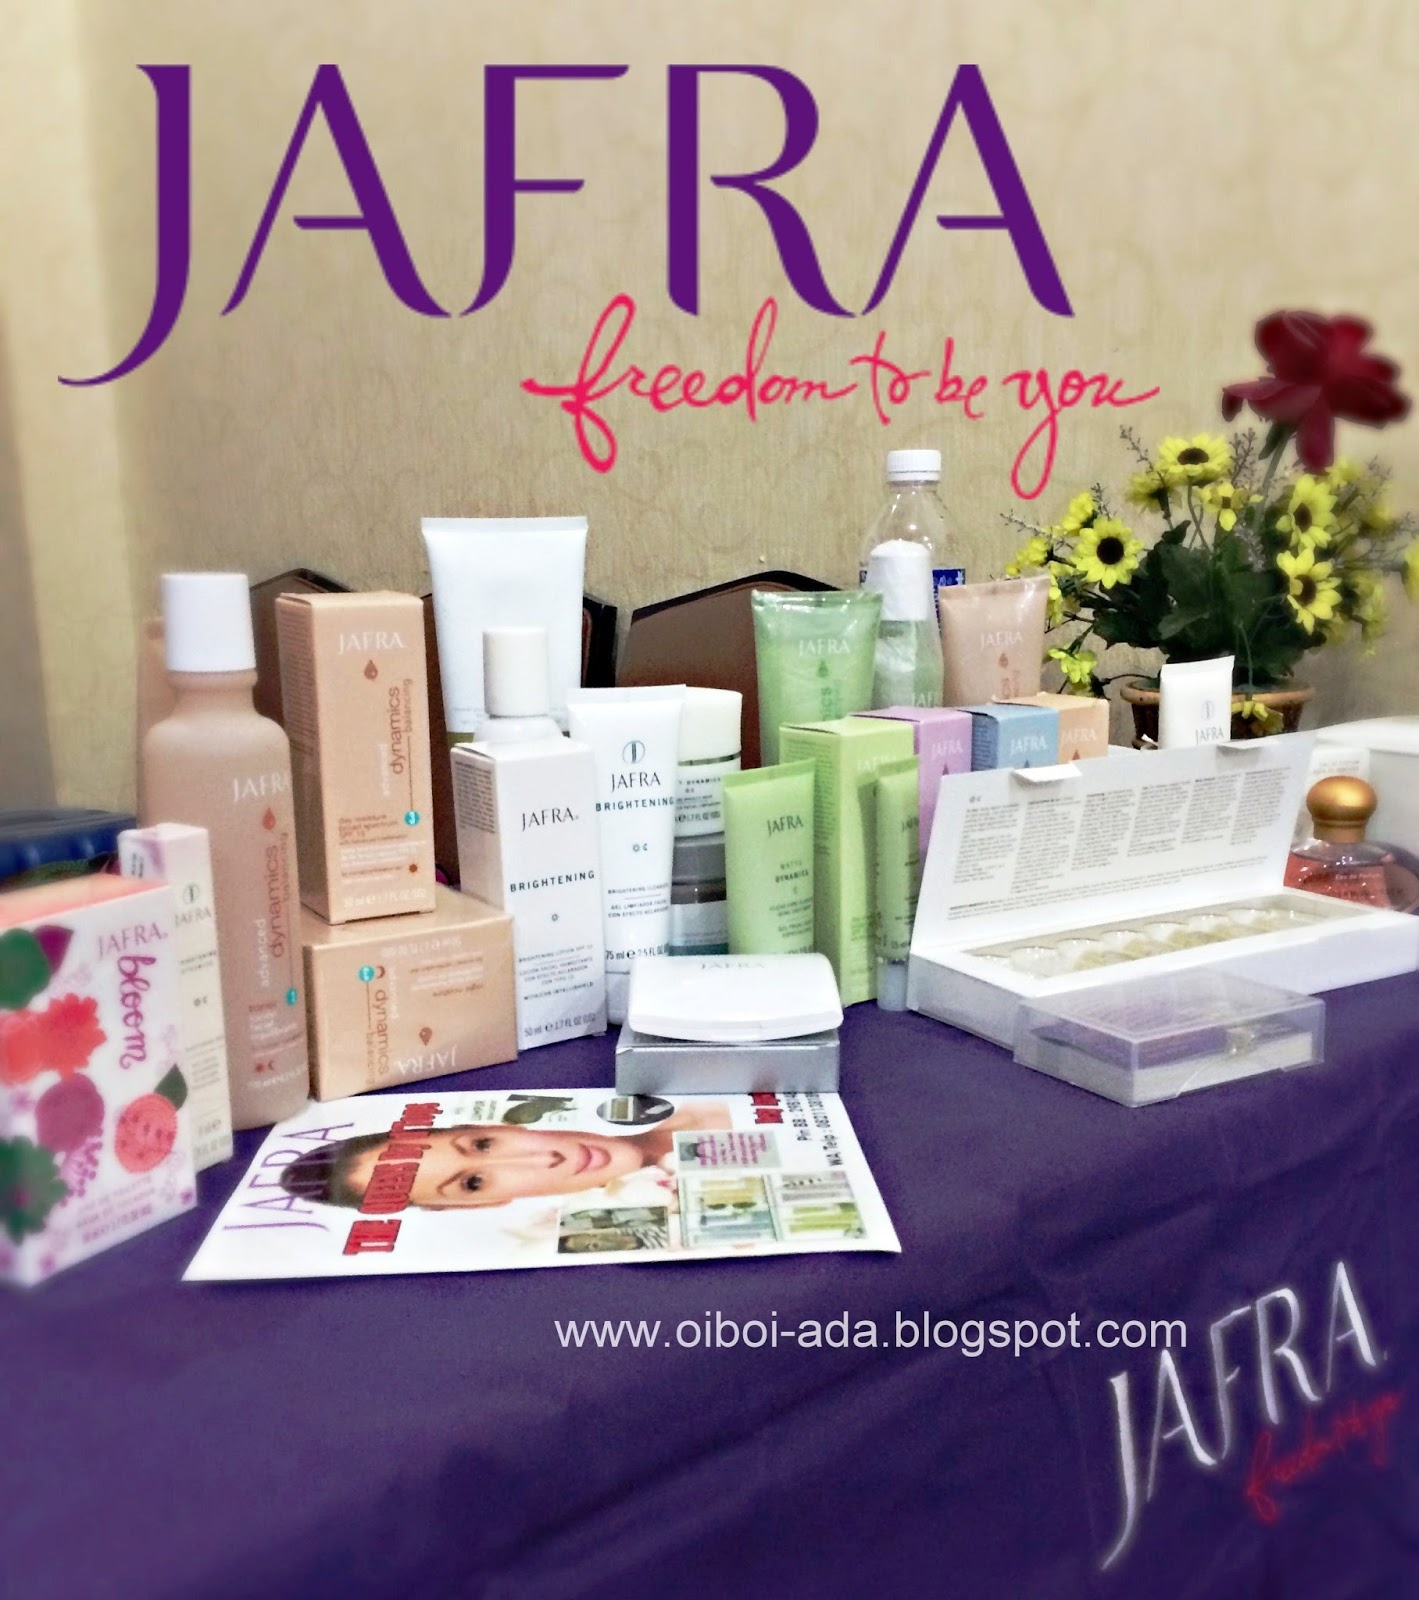 Jafra Guest Day Oiboi